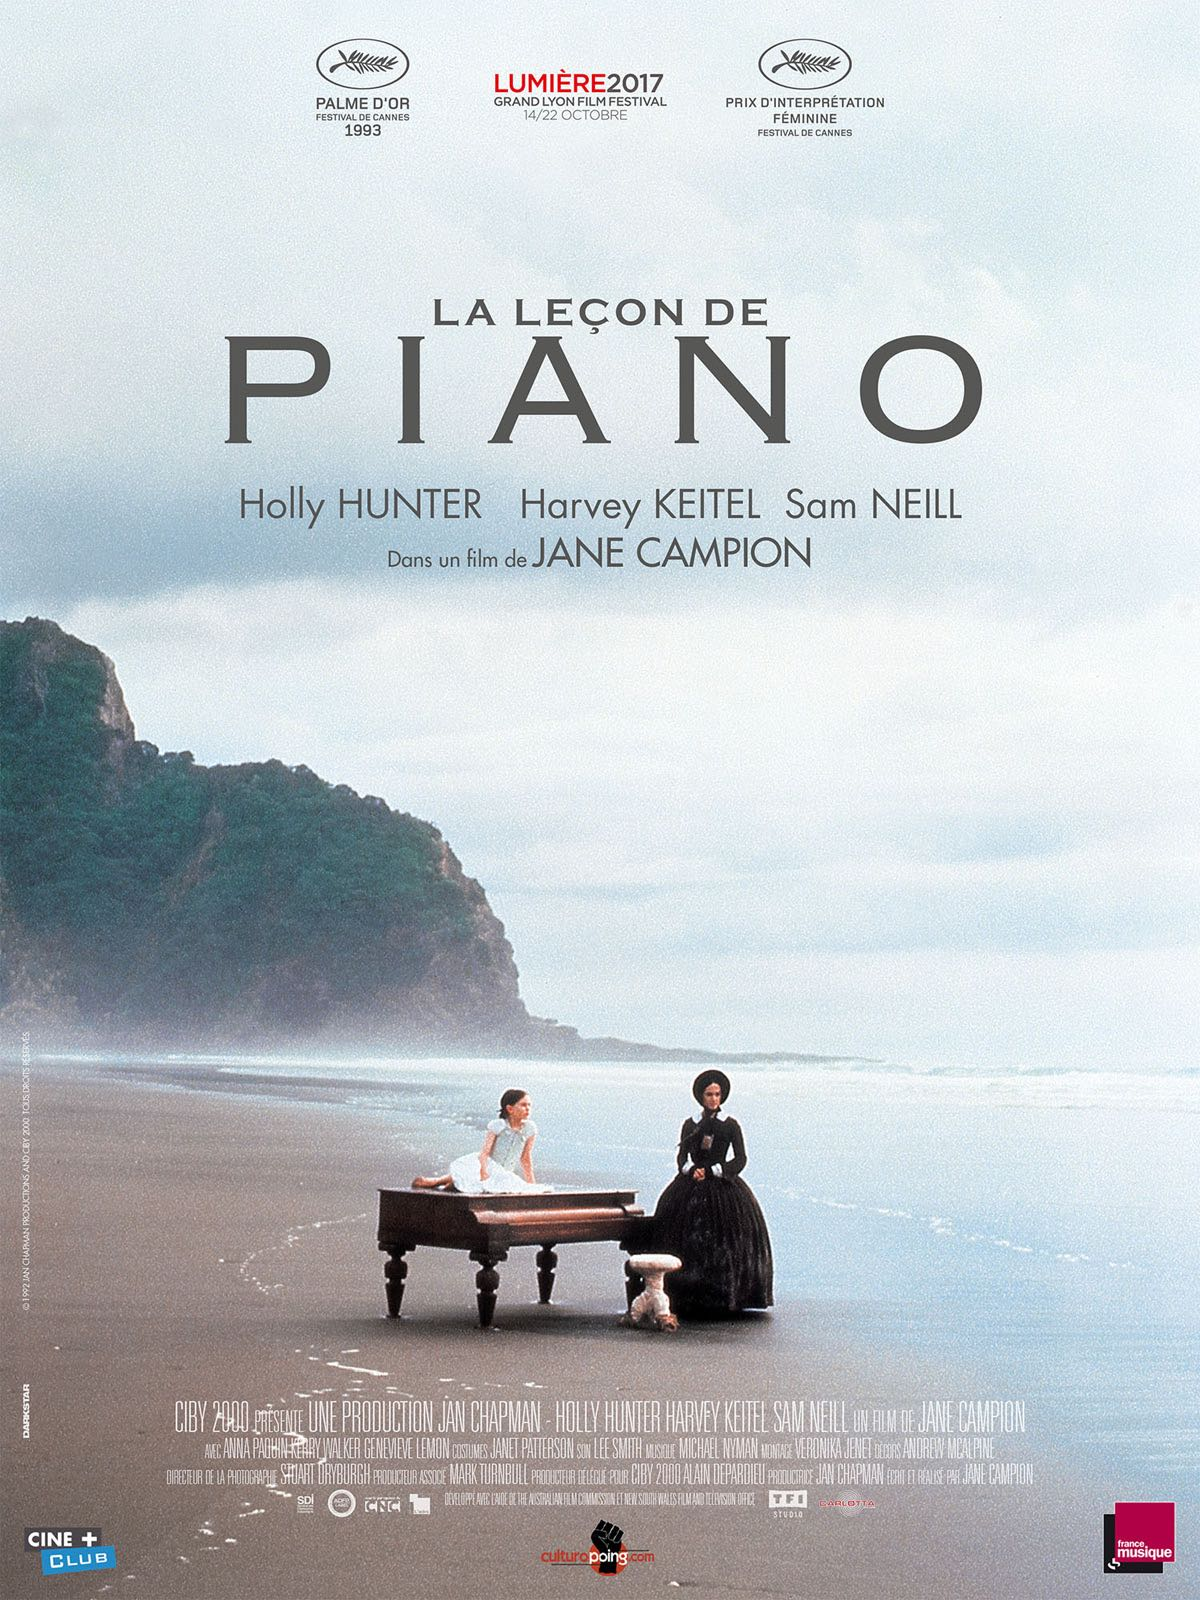 LA LECON DE PIANO